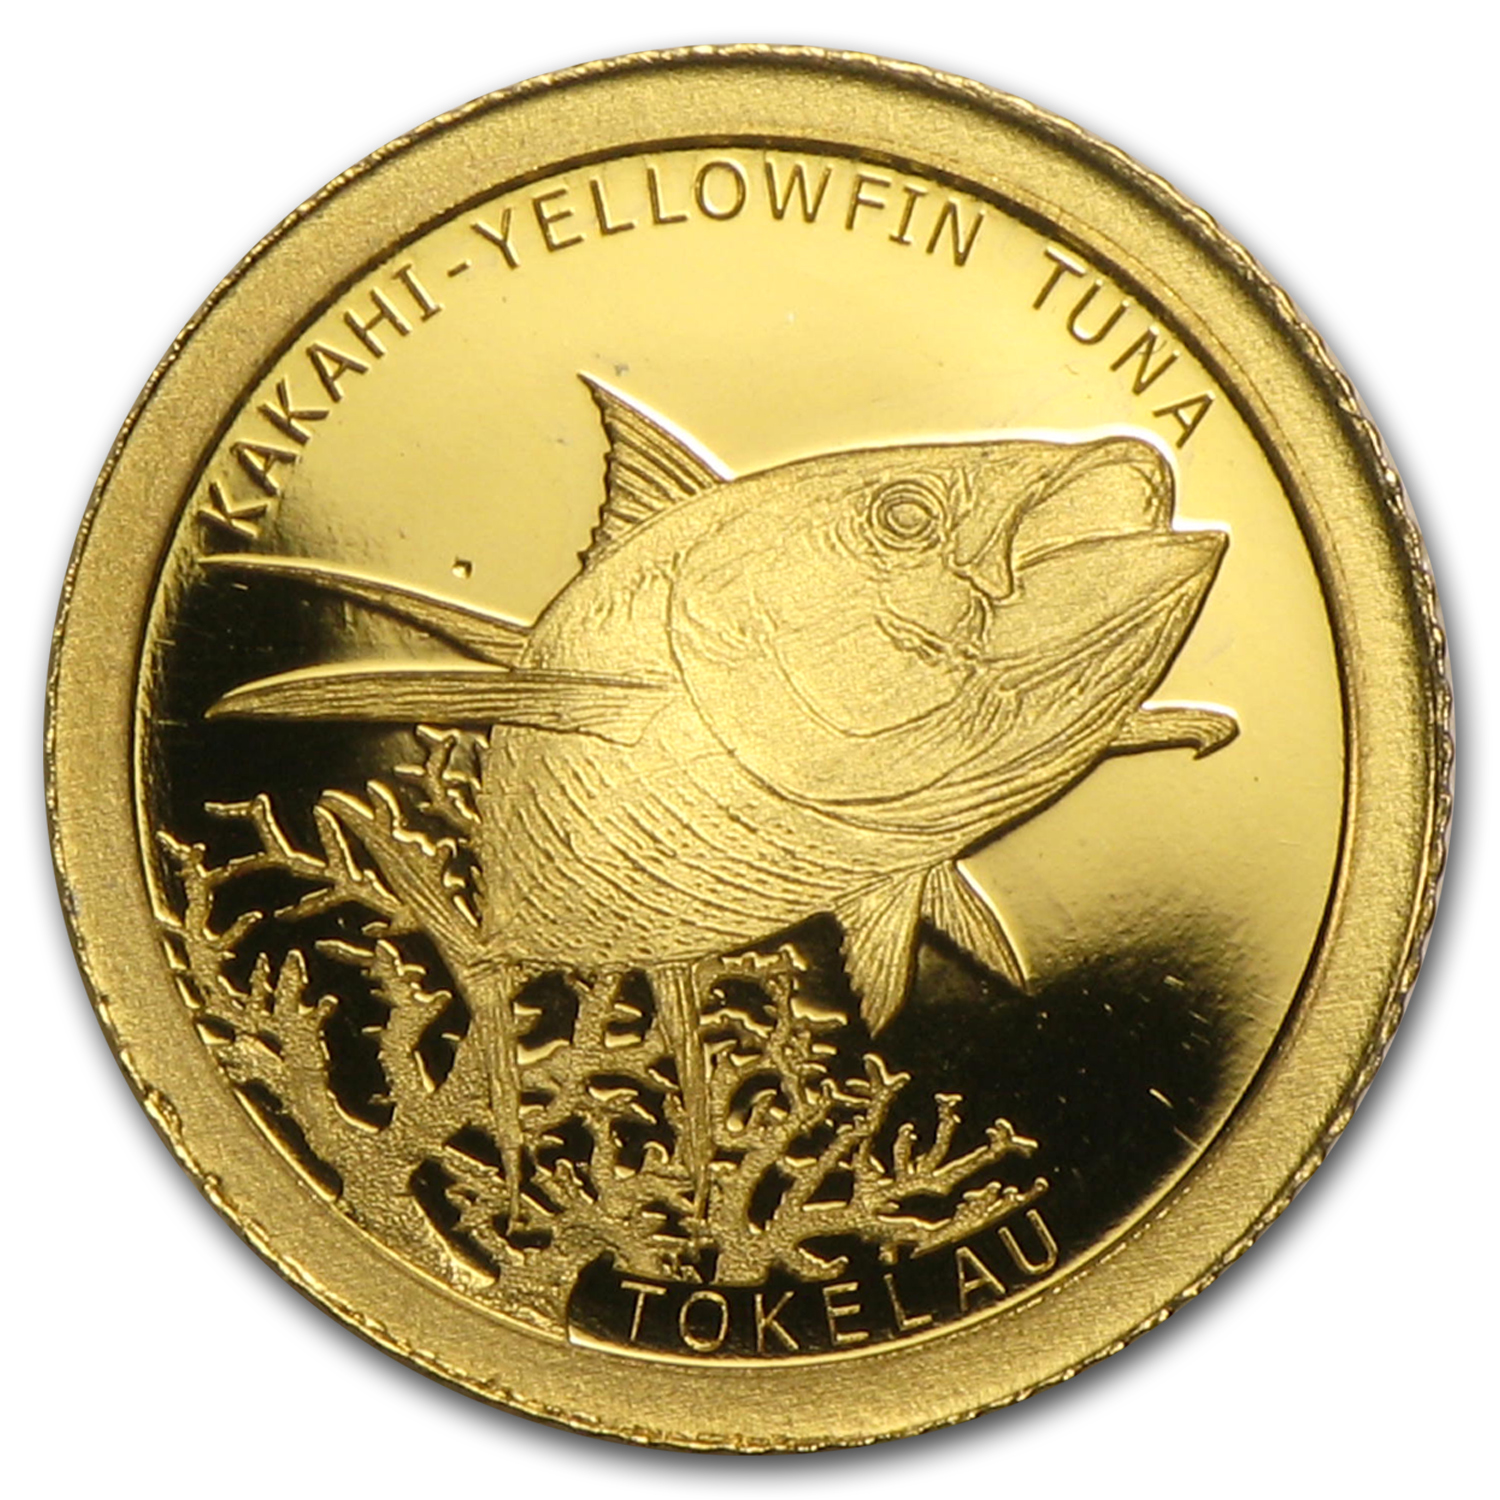 2015 Tokelau 1/2 gram Proof Gold $5 Kakahi Yellowfish Tuna